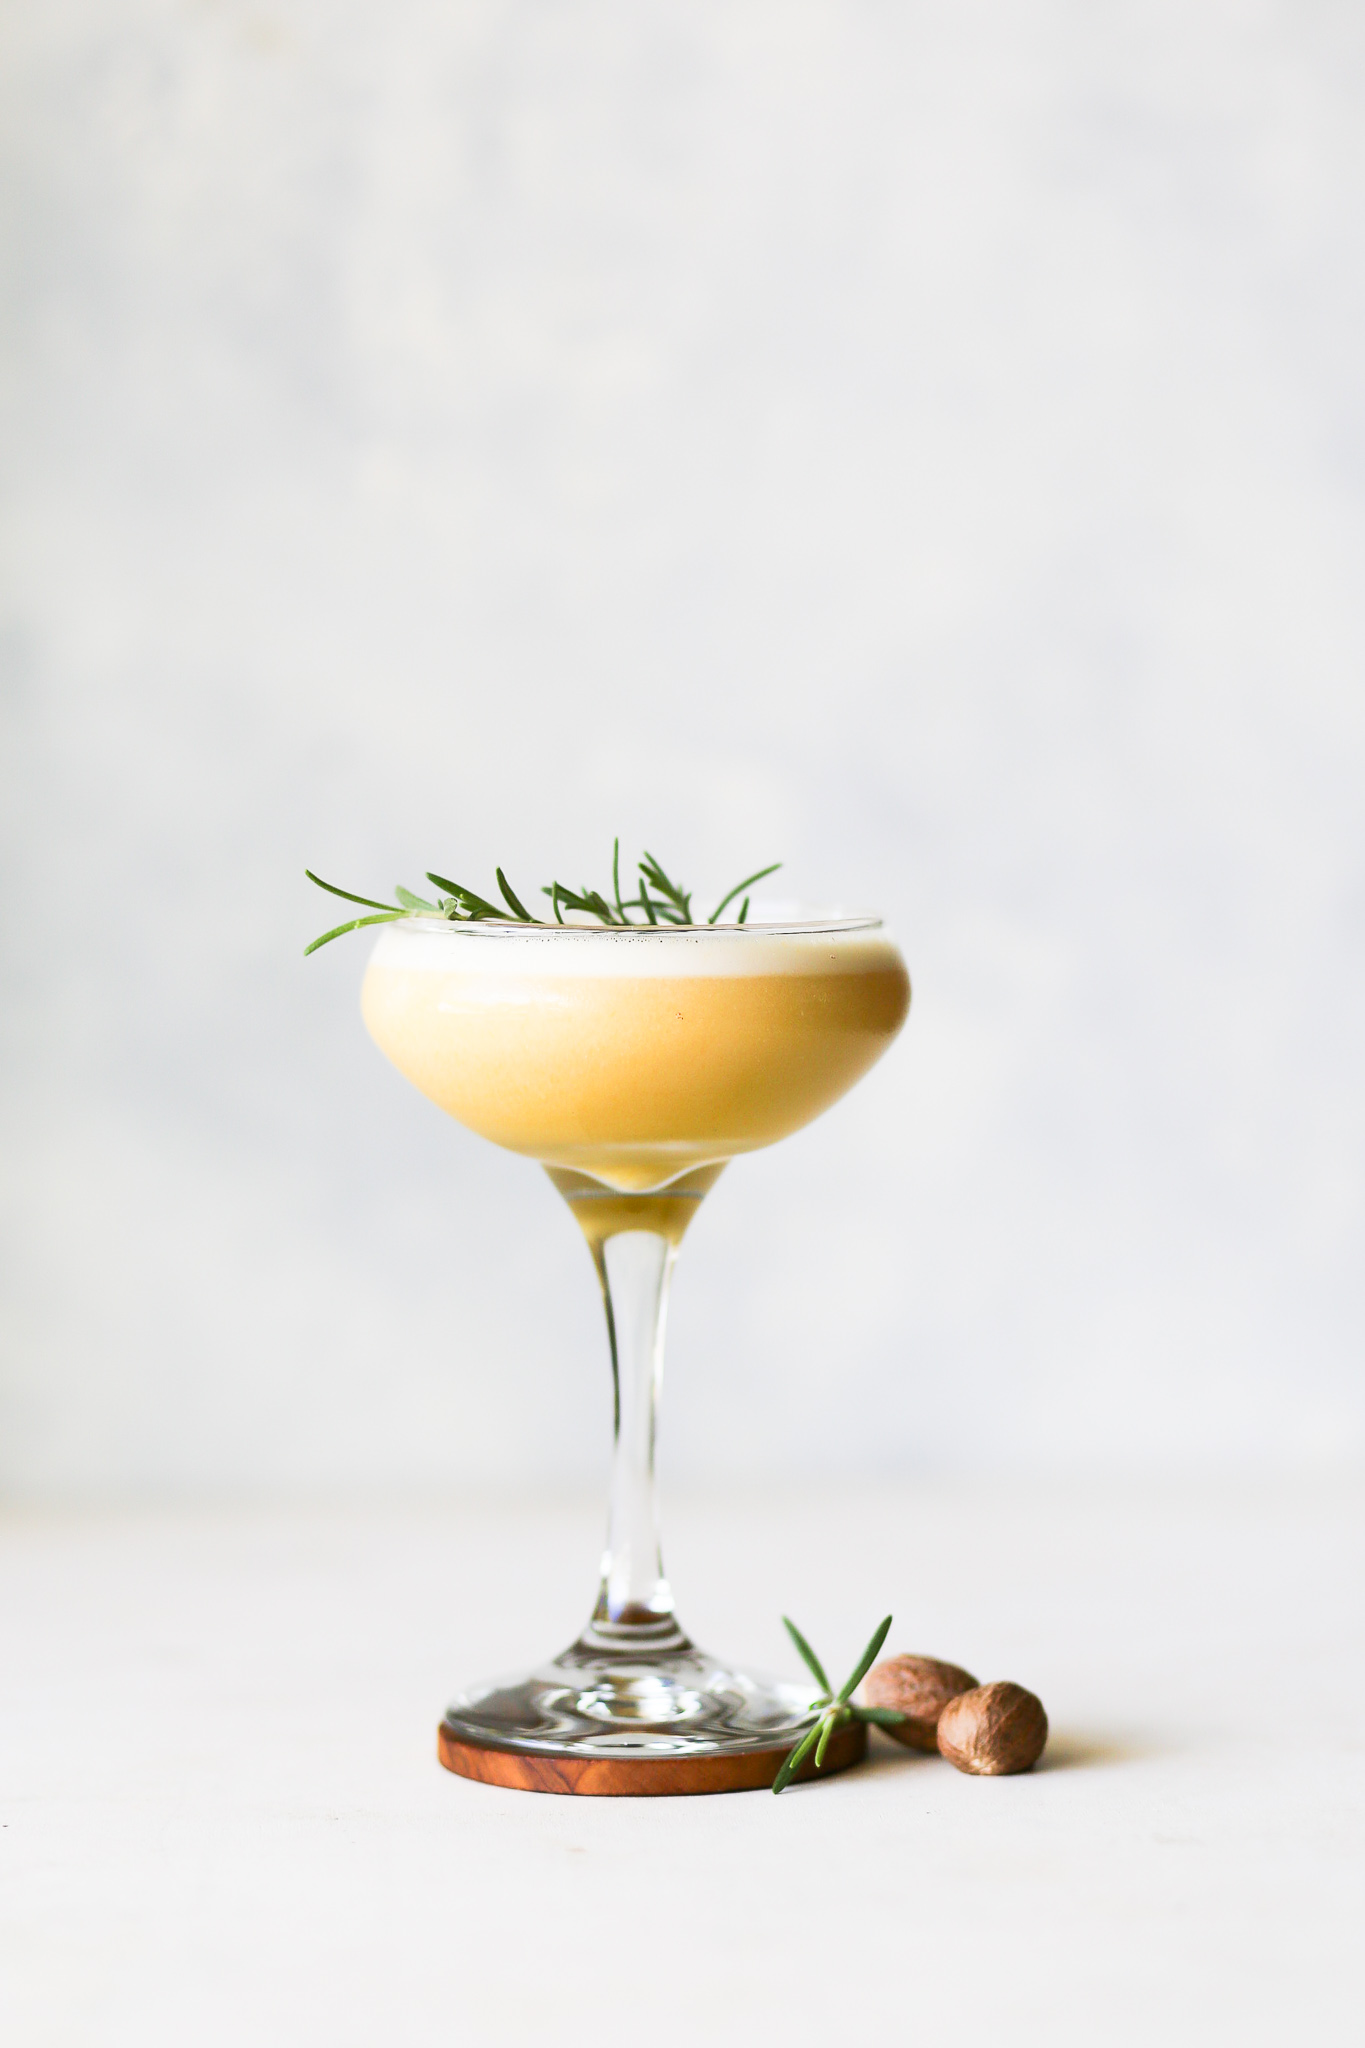 Ponderosa Pine Flip | Set the Table #bourboncocktail #fallcocktail #recipe